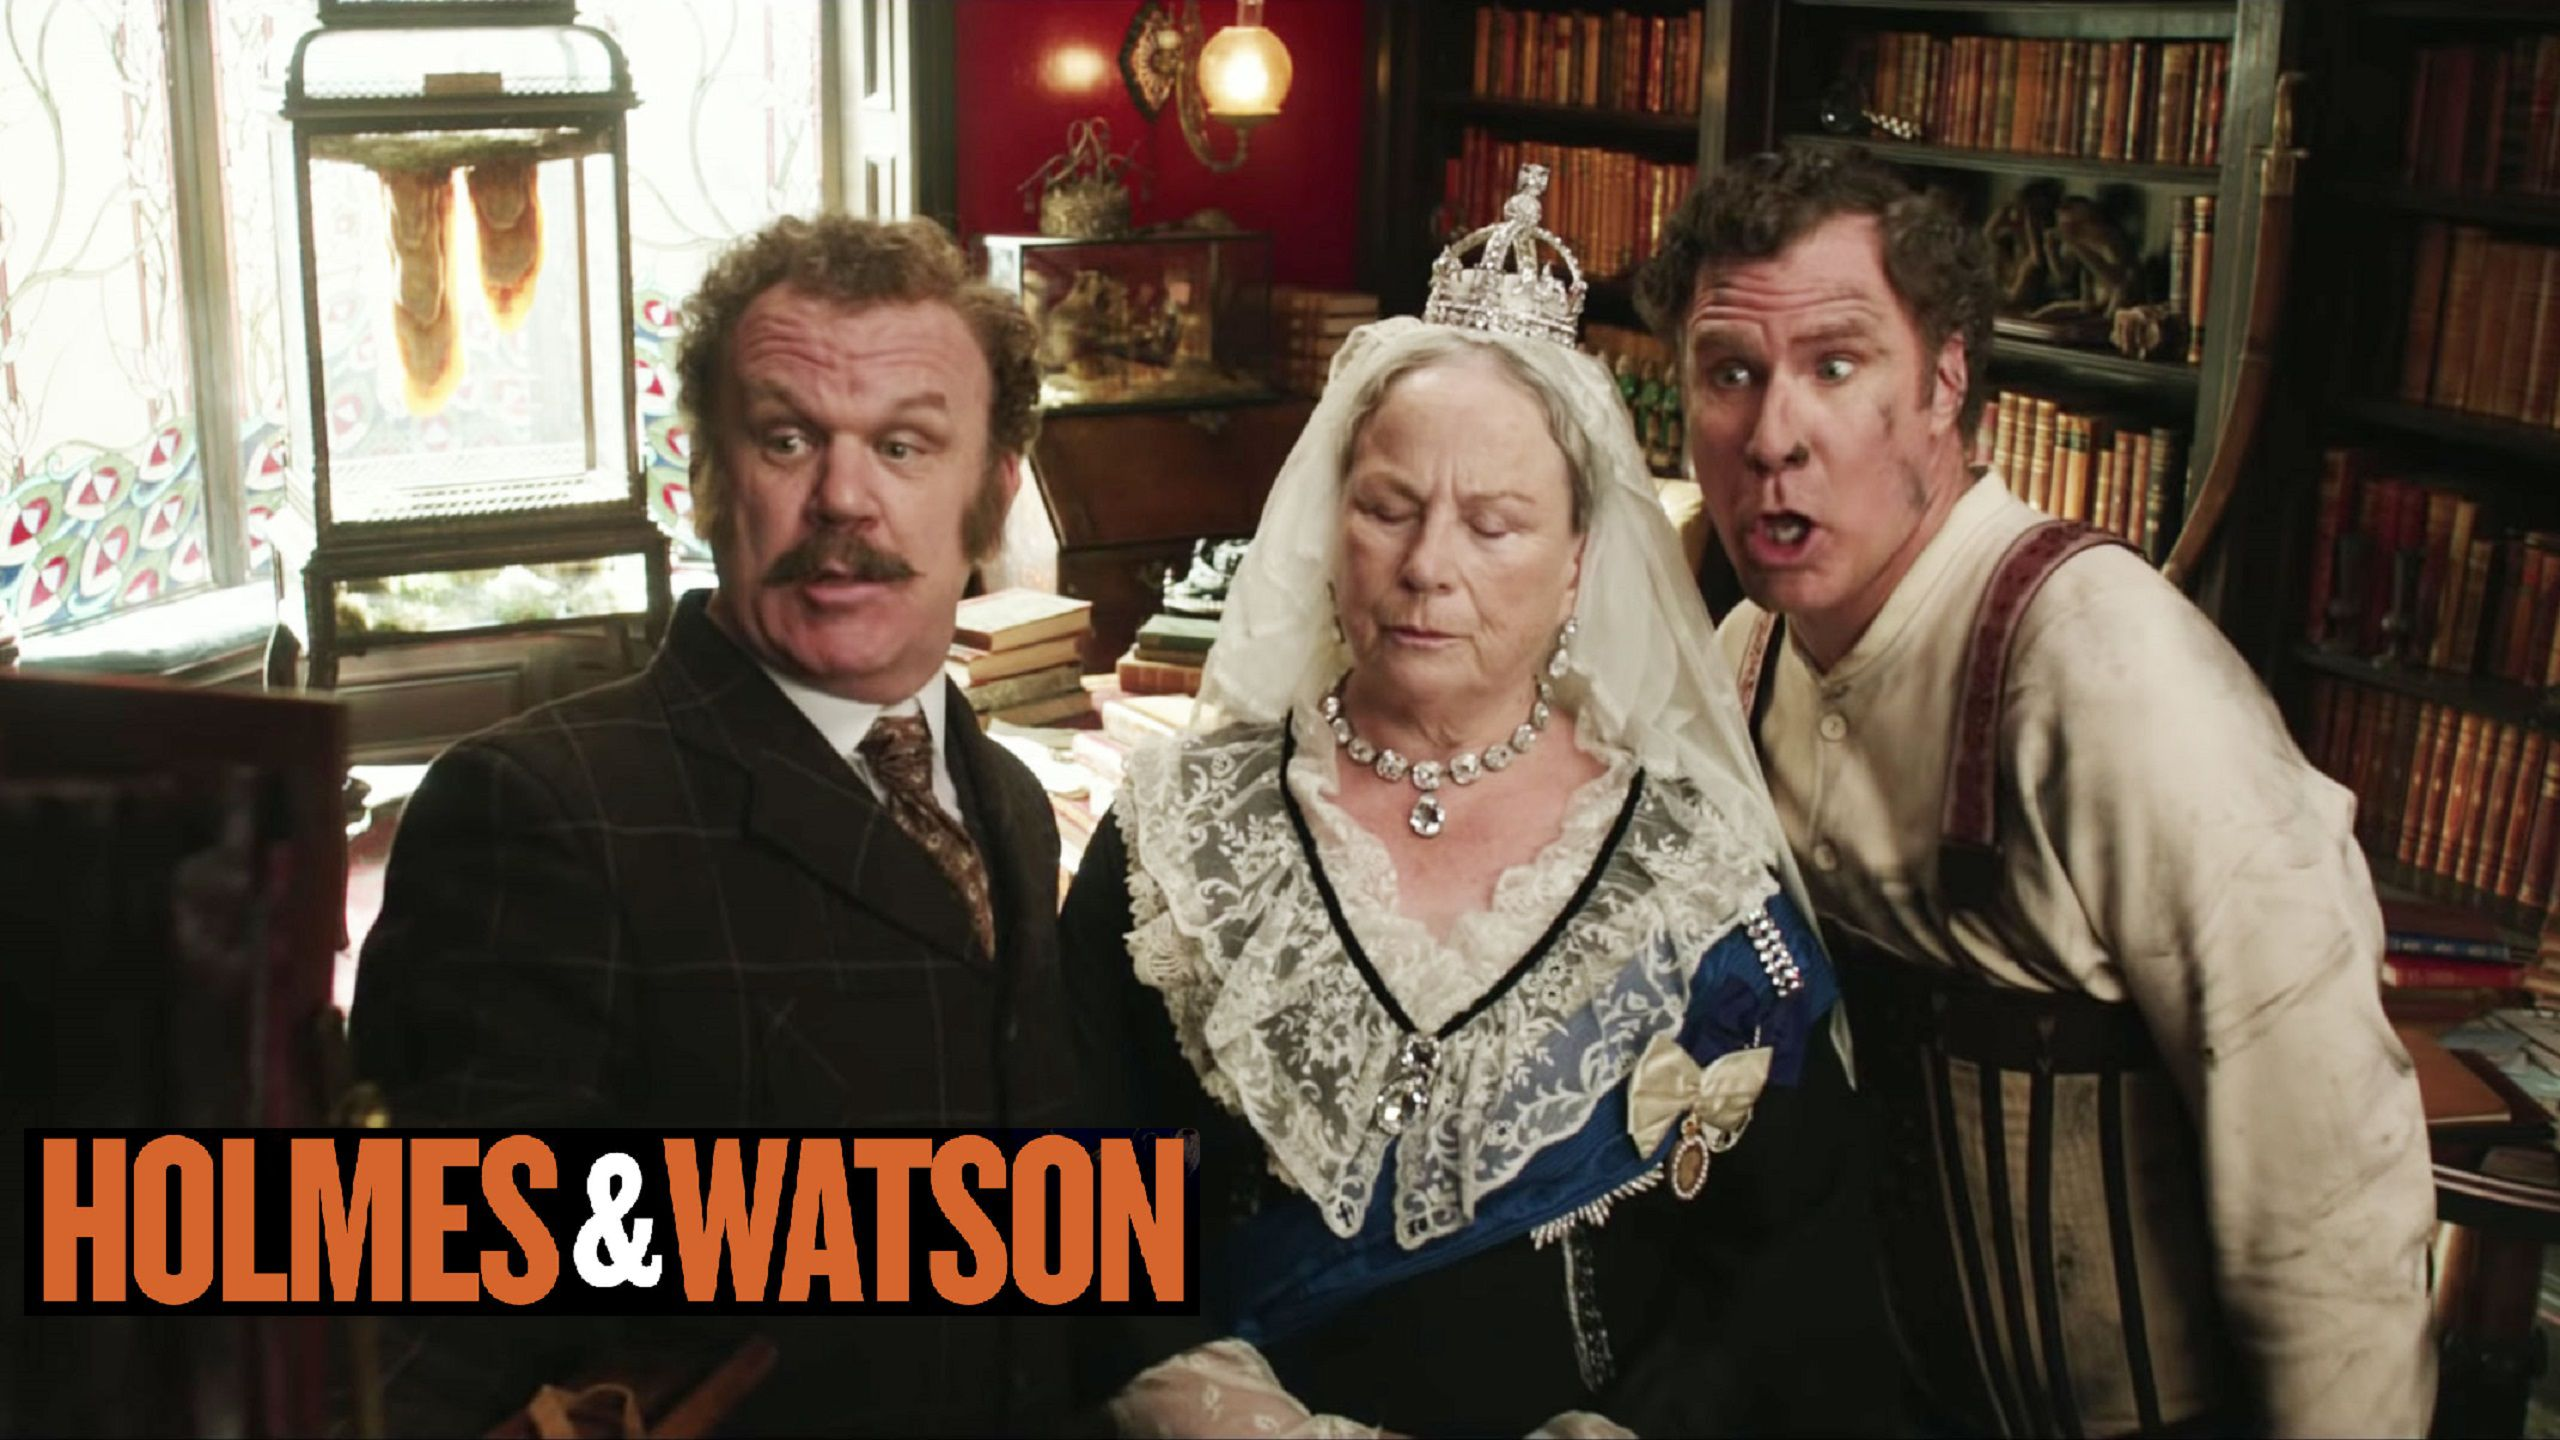 Holmes and Watson (2018) - Will Ferrell, John C. Reilly with the Queen